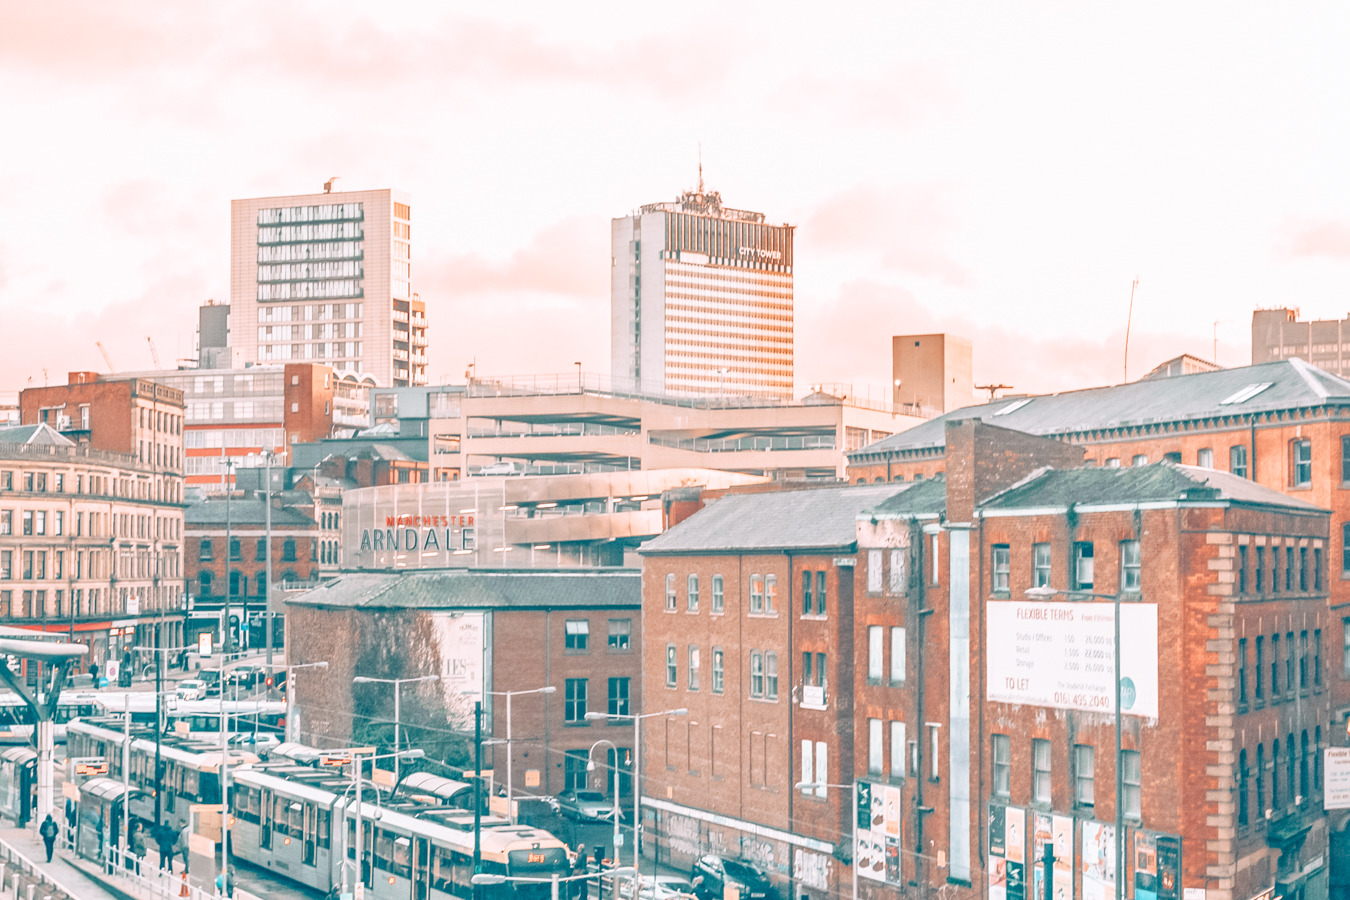 Buildings in Manchester